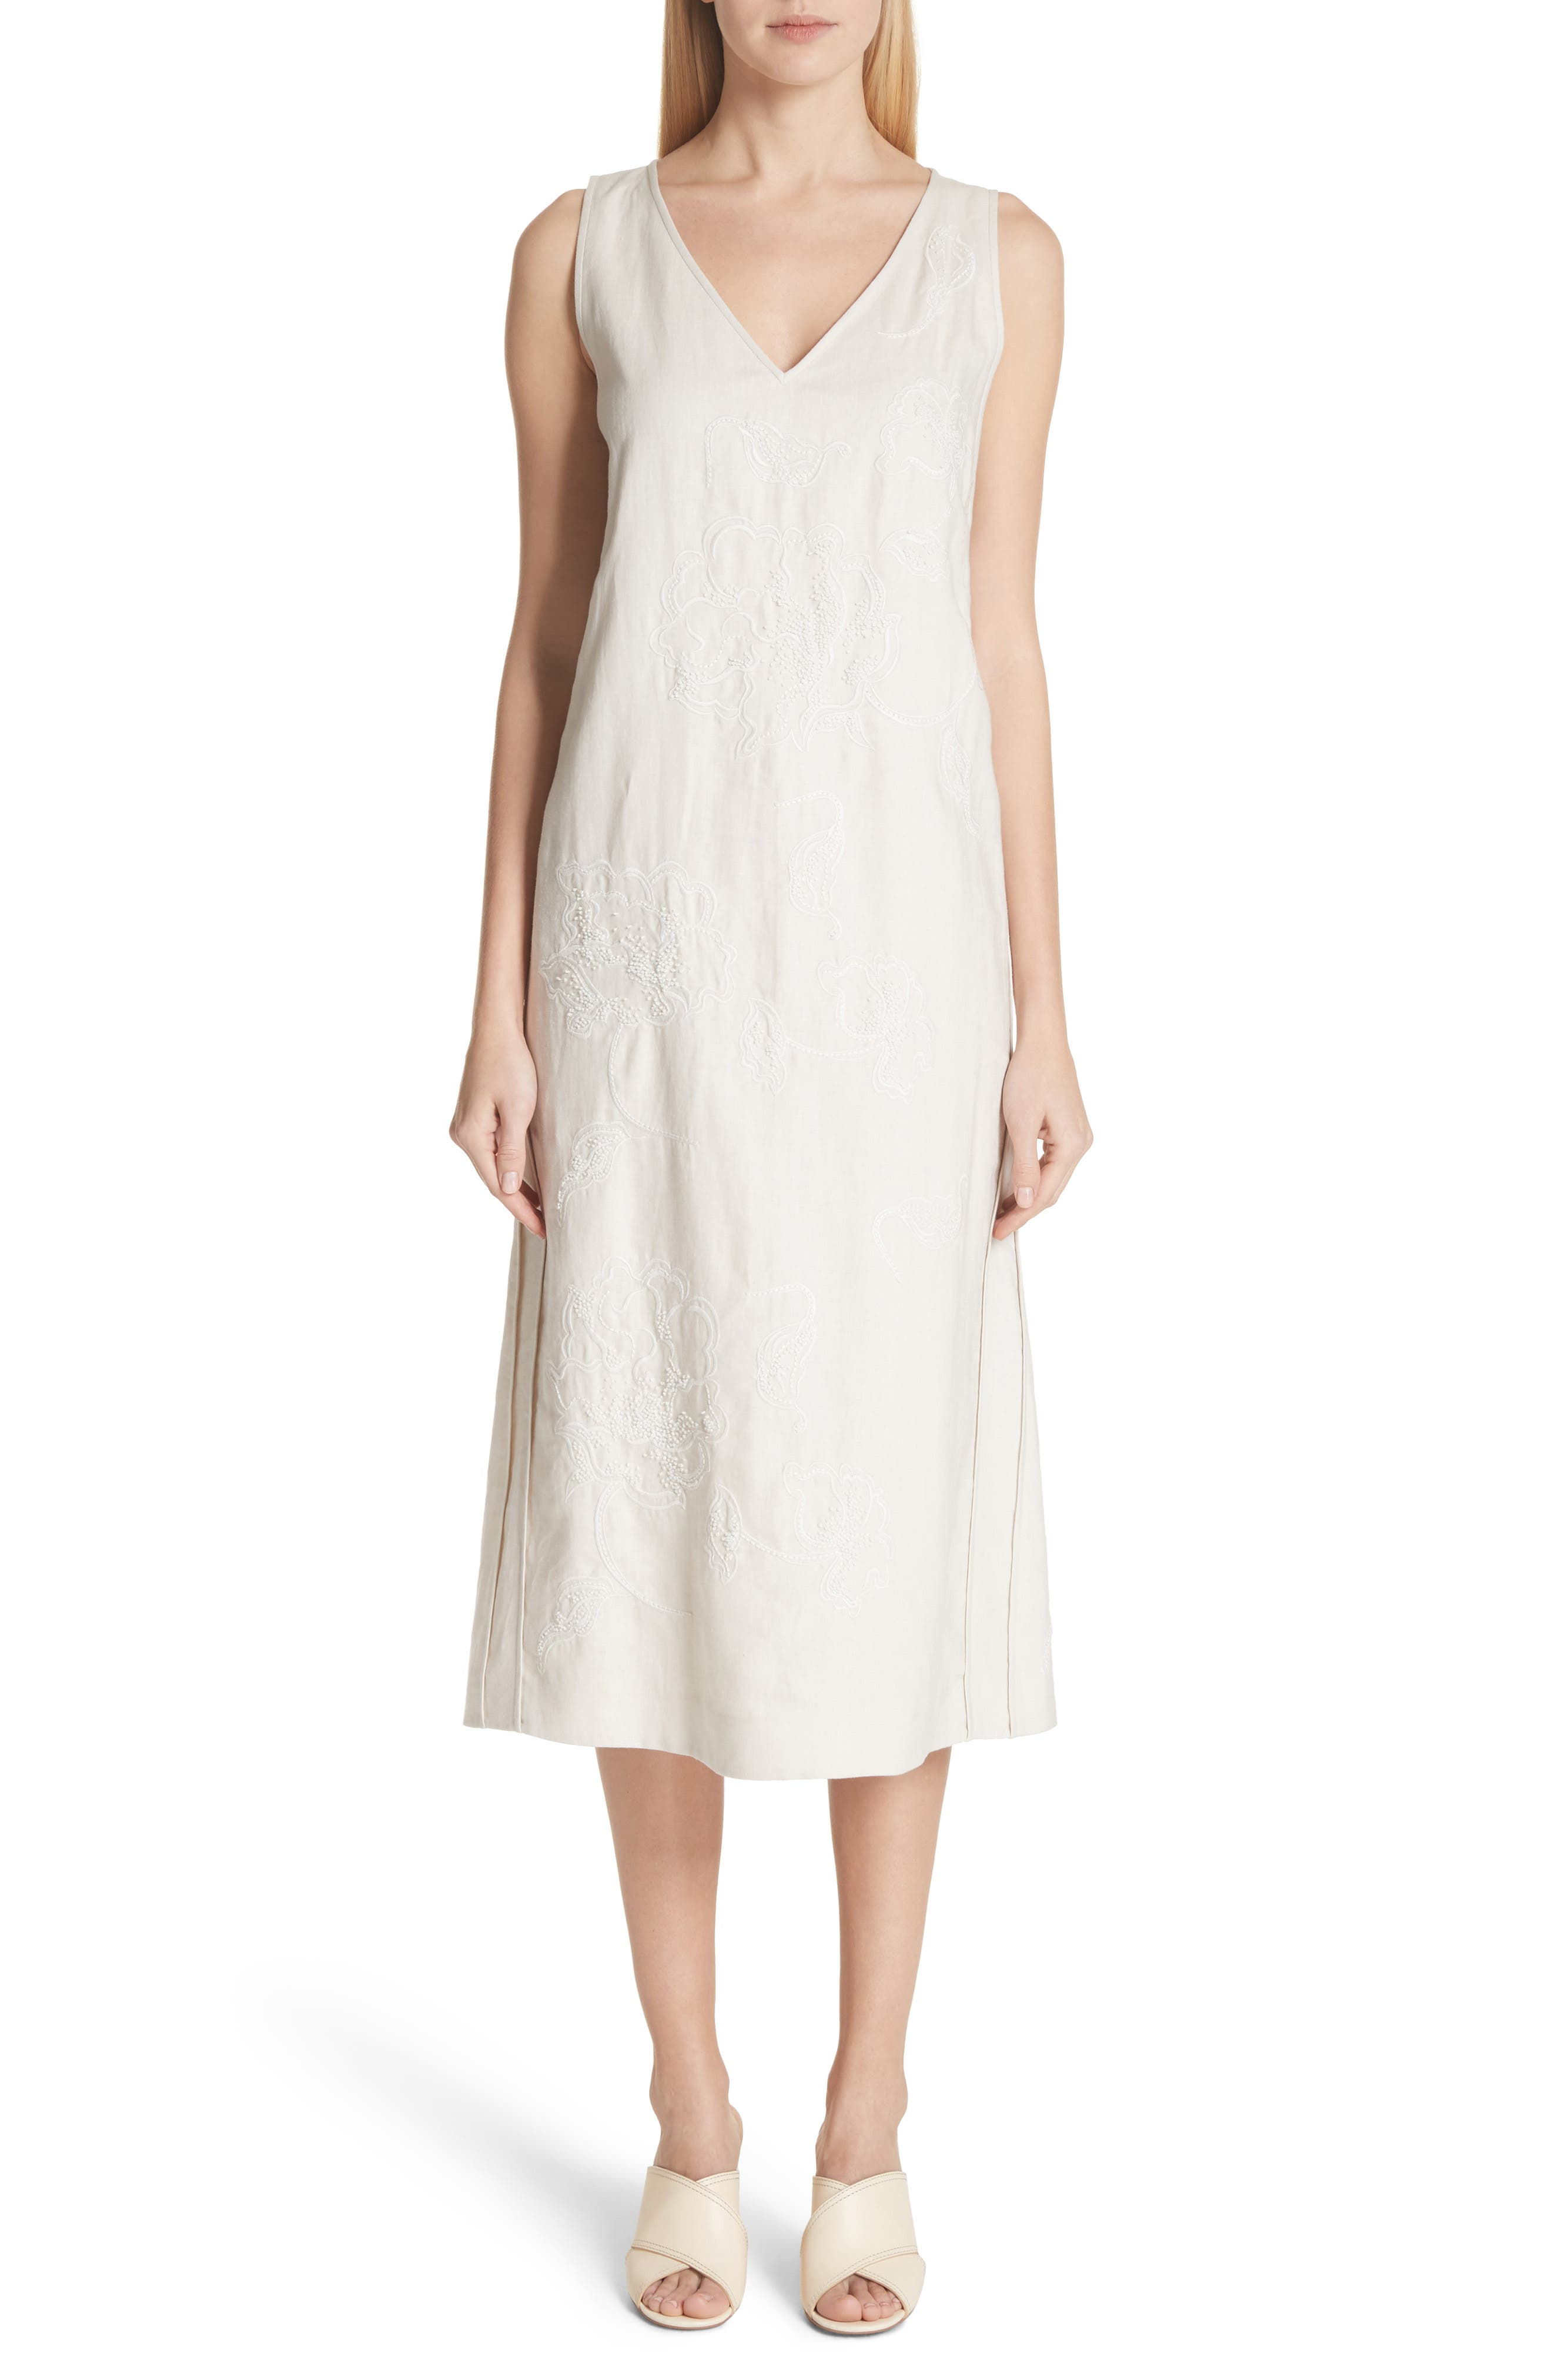 Duncan Embroidered Linen Dress,                             Main thumbnail 1, color,                             252